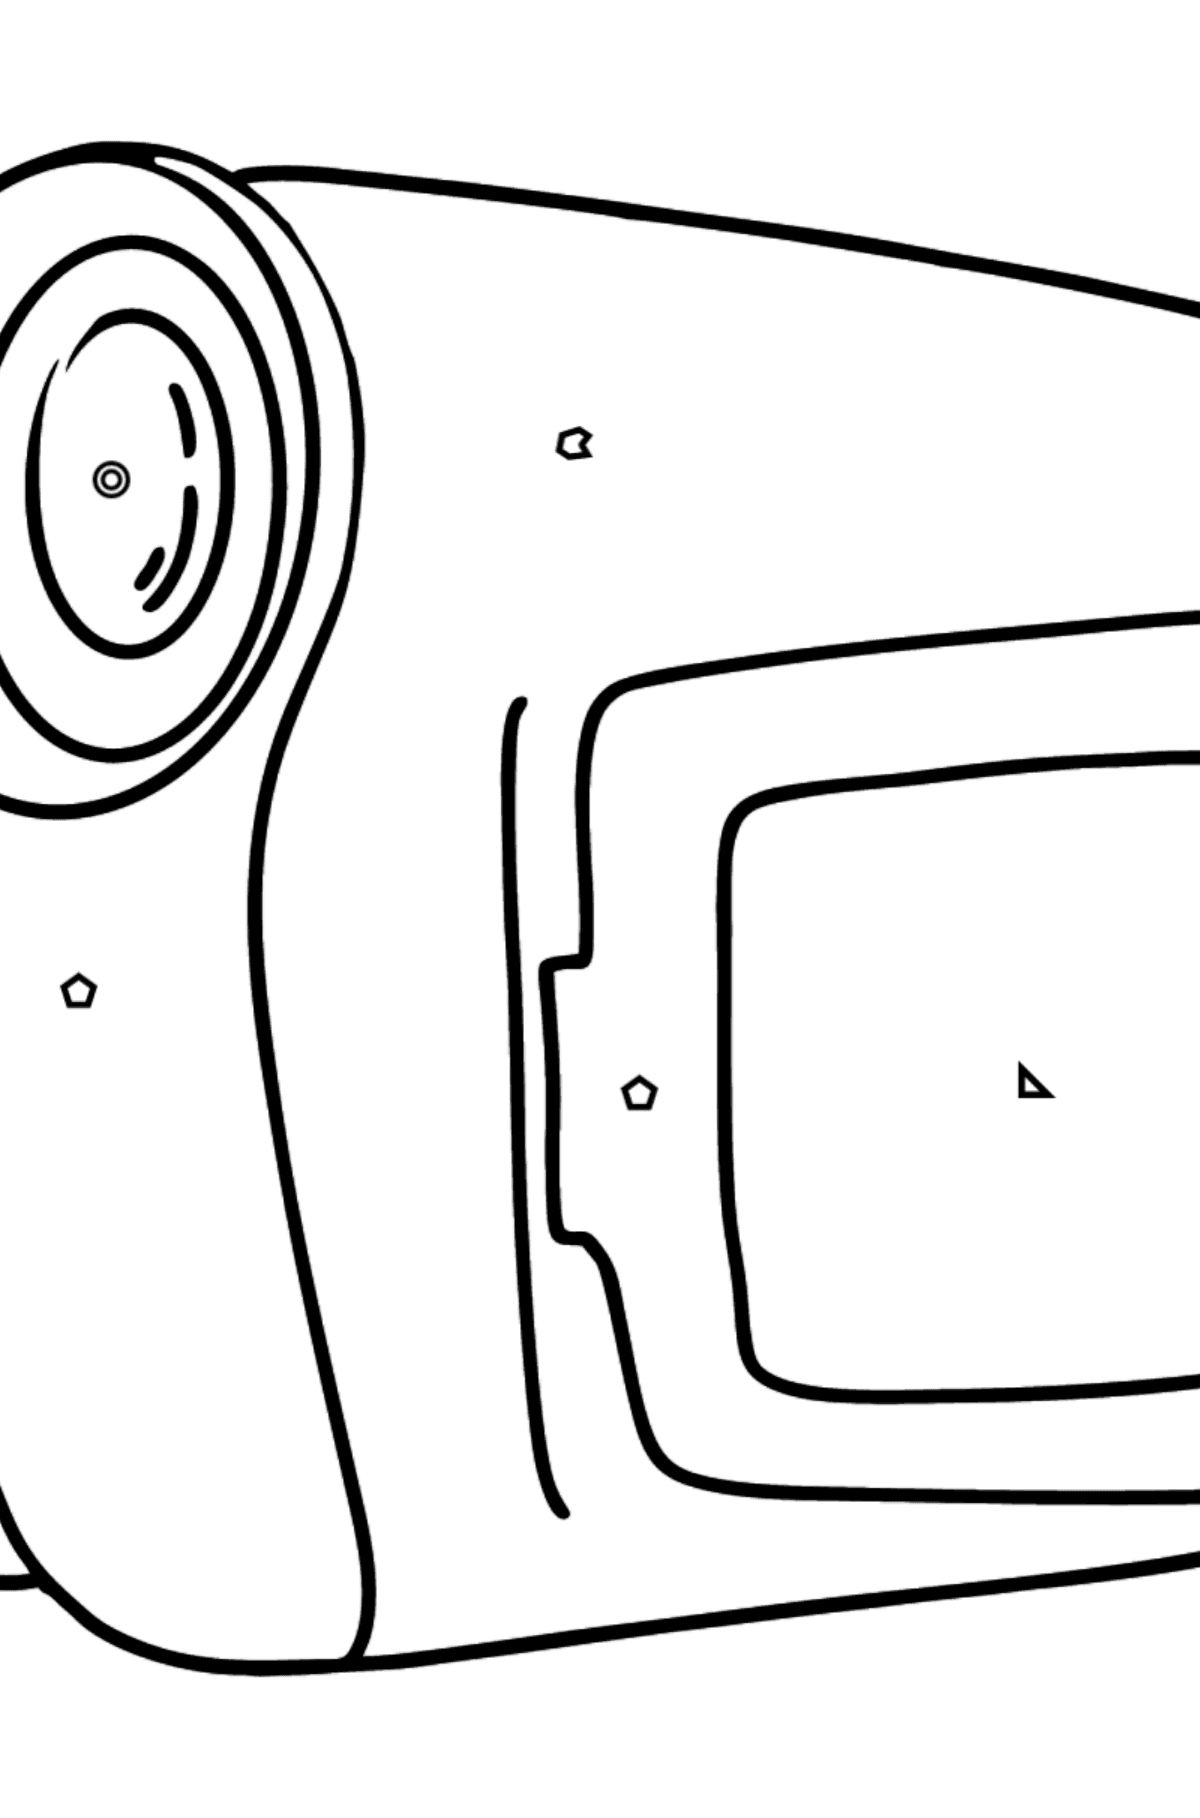 Video camera coloring page - Coloring by Geometric Shapes for Kids